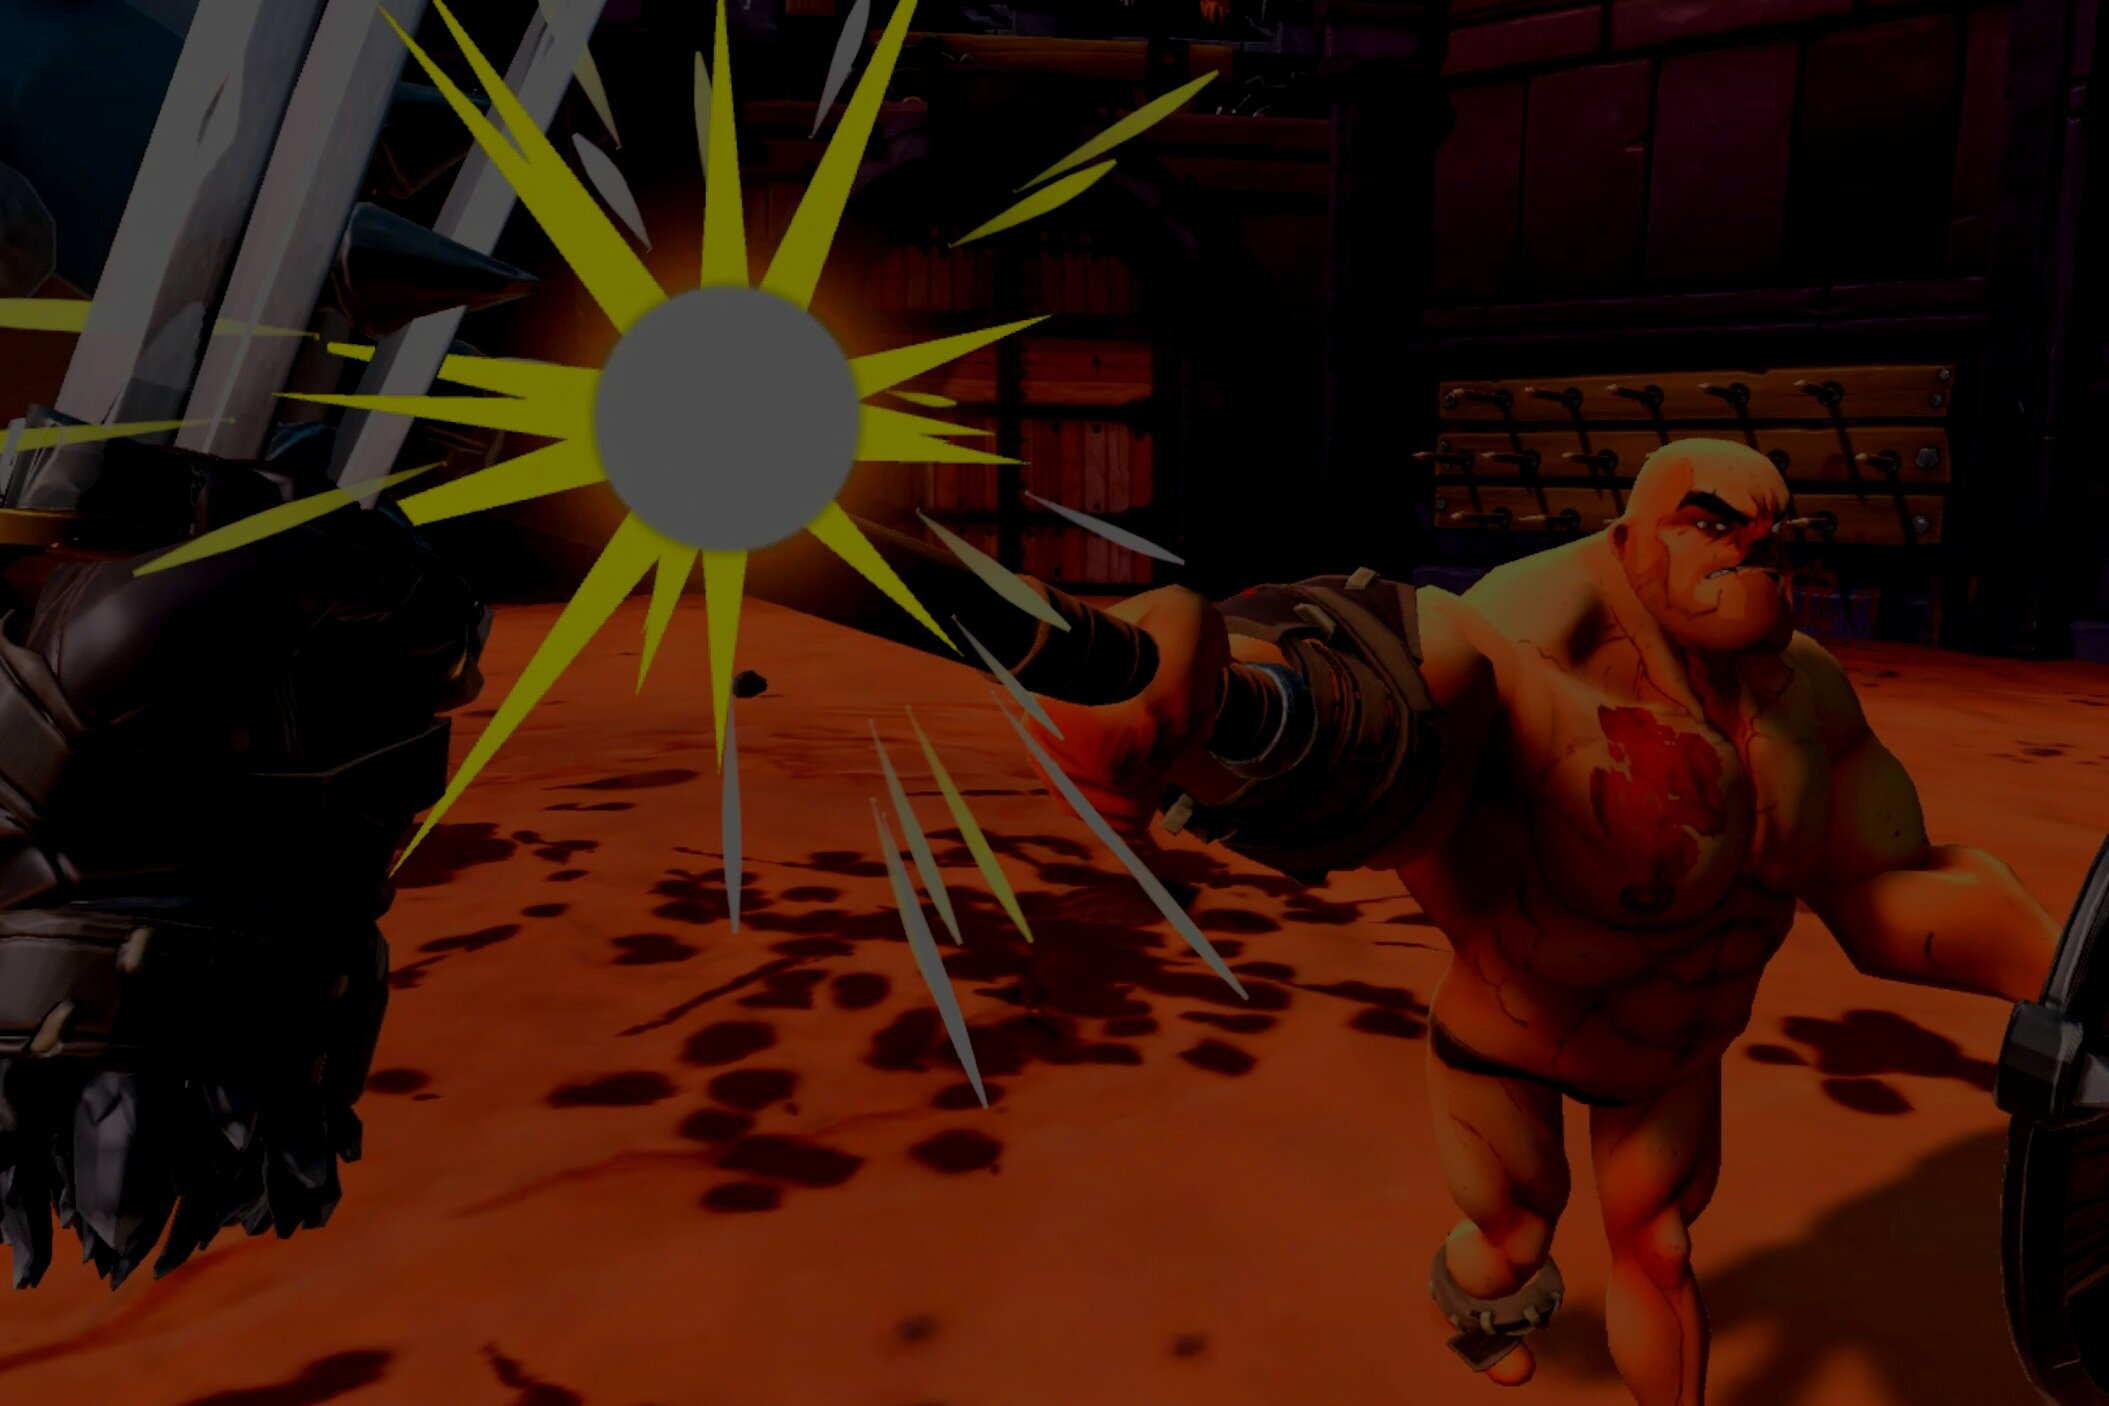 Gorn - Battle cartoon gladiators in this intensely comical and brutally brutal arena fight to the death!